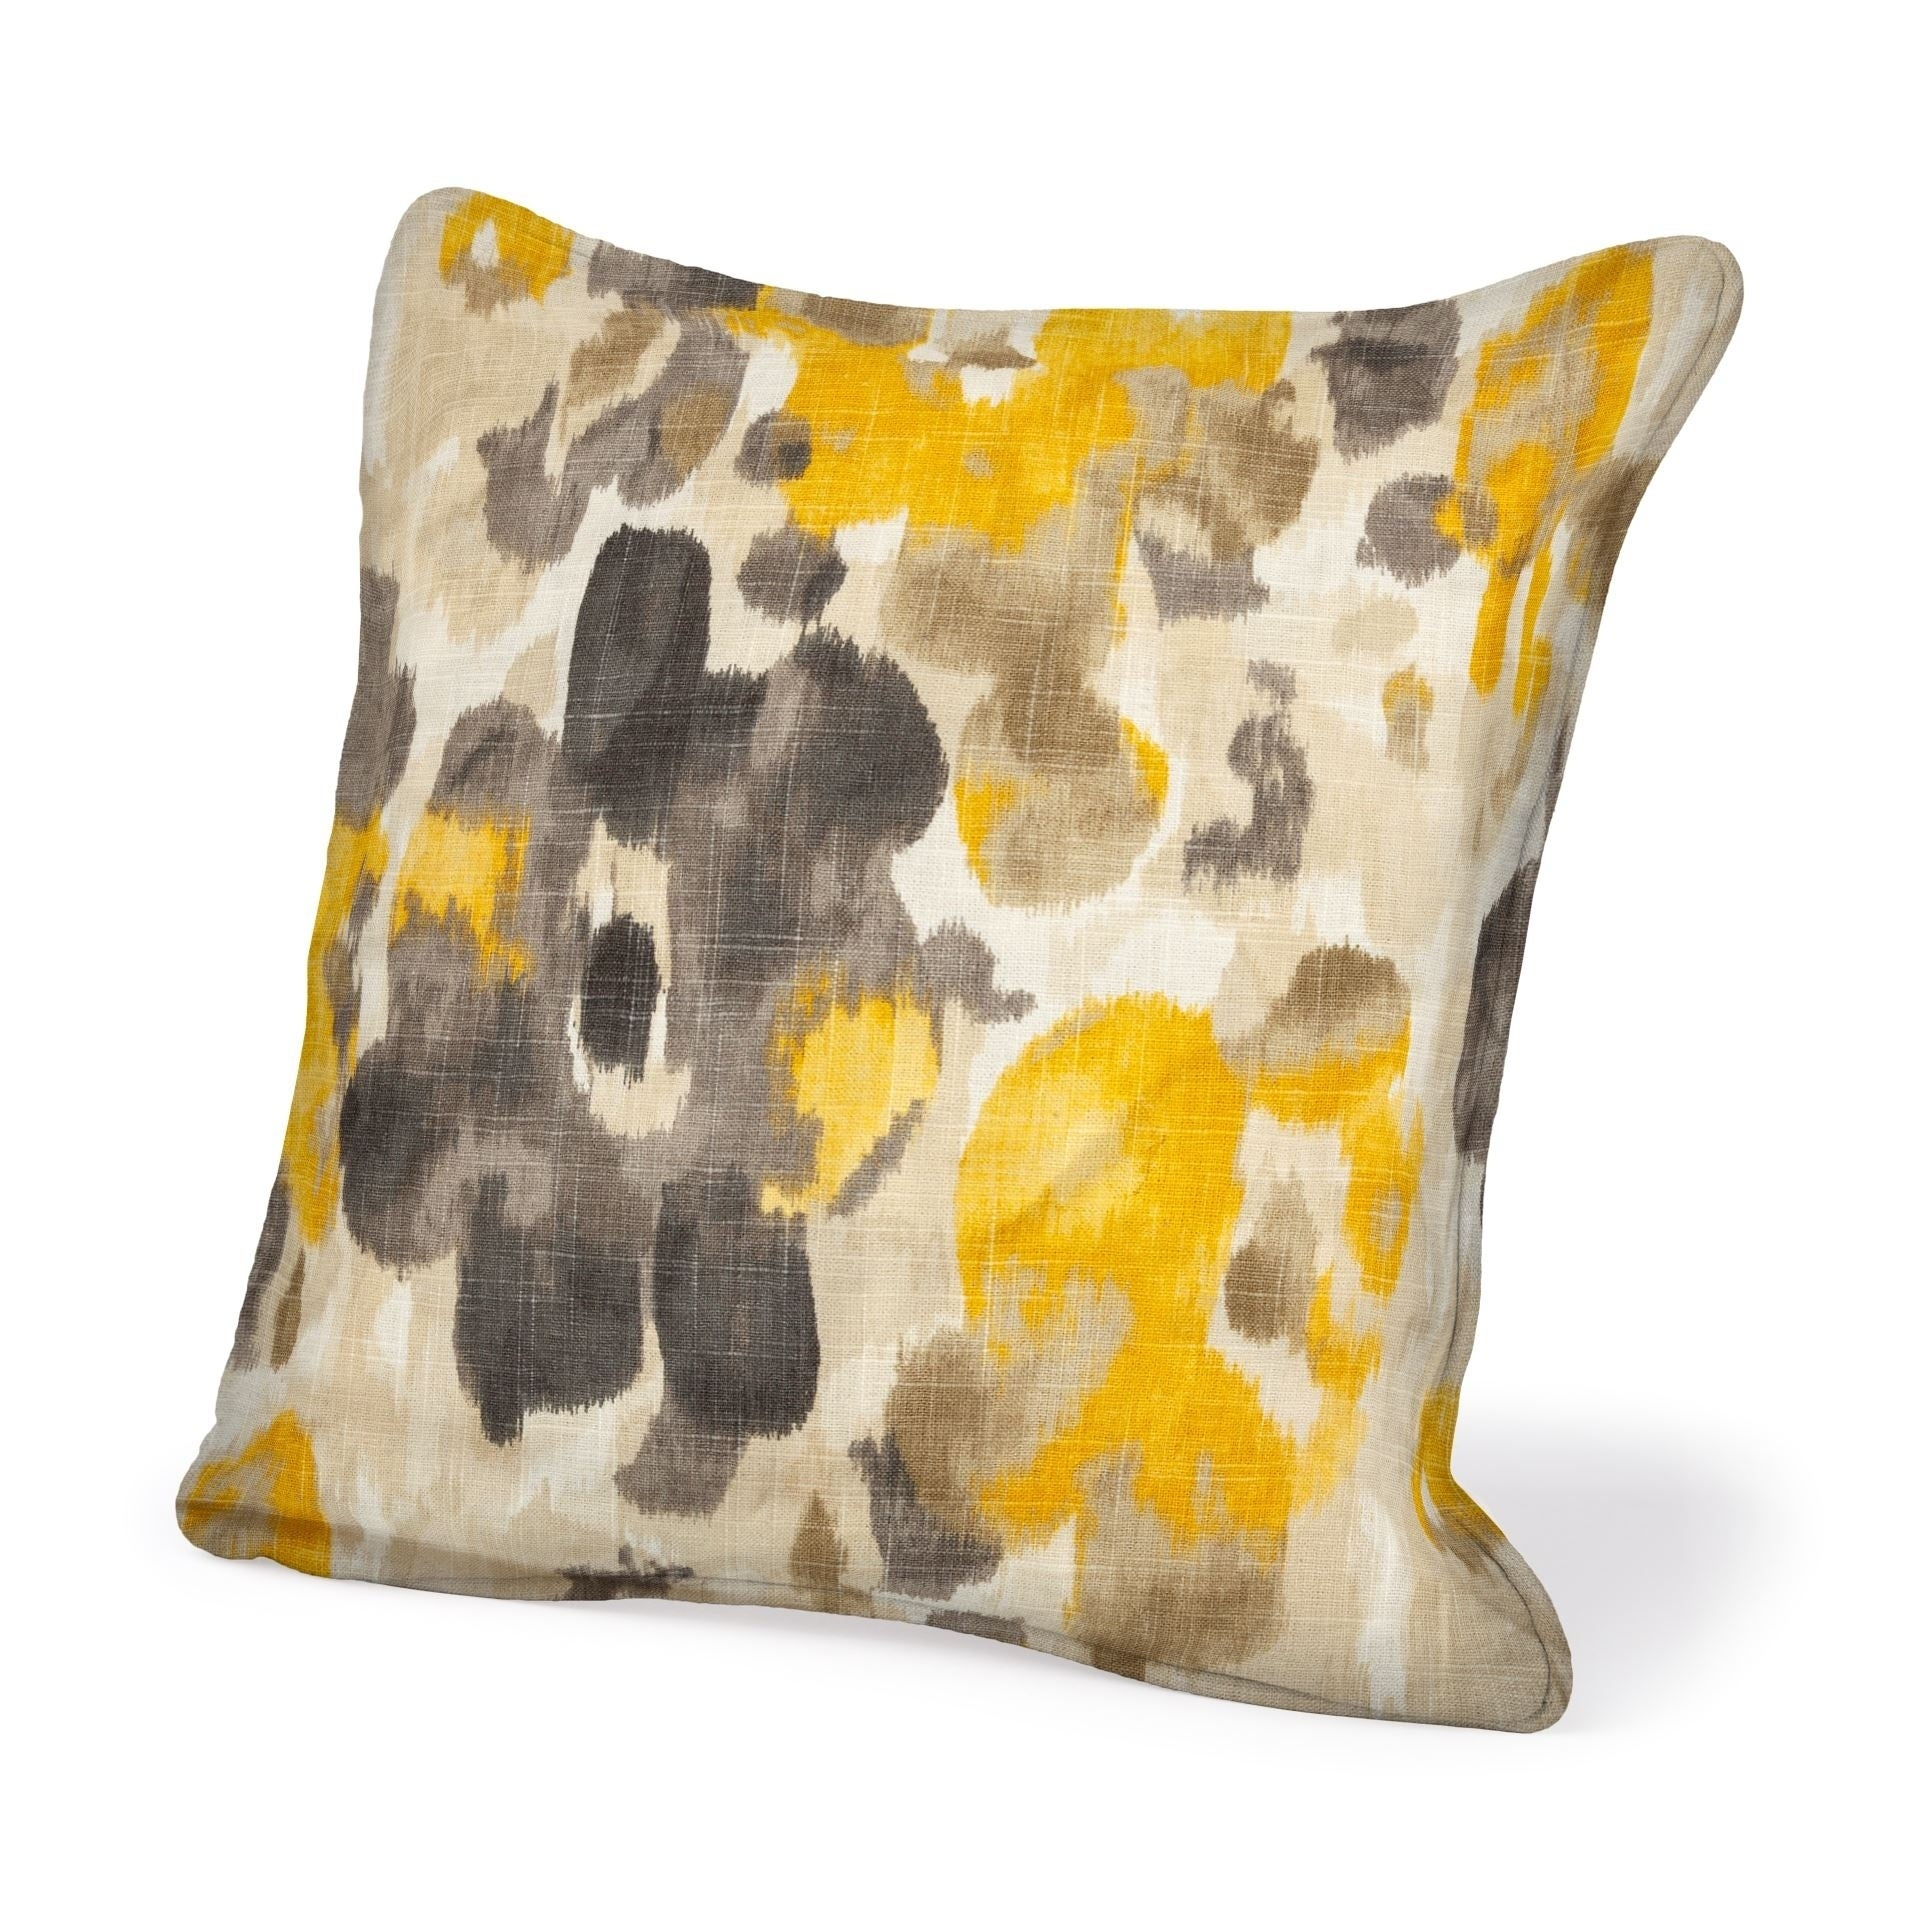 Mercana Sunflower III 22 x 22 (cover only) Decorative Pillow